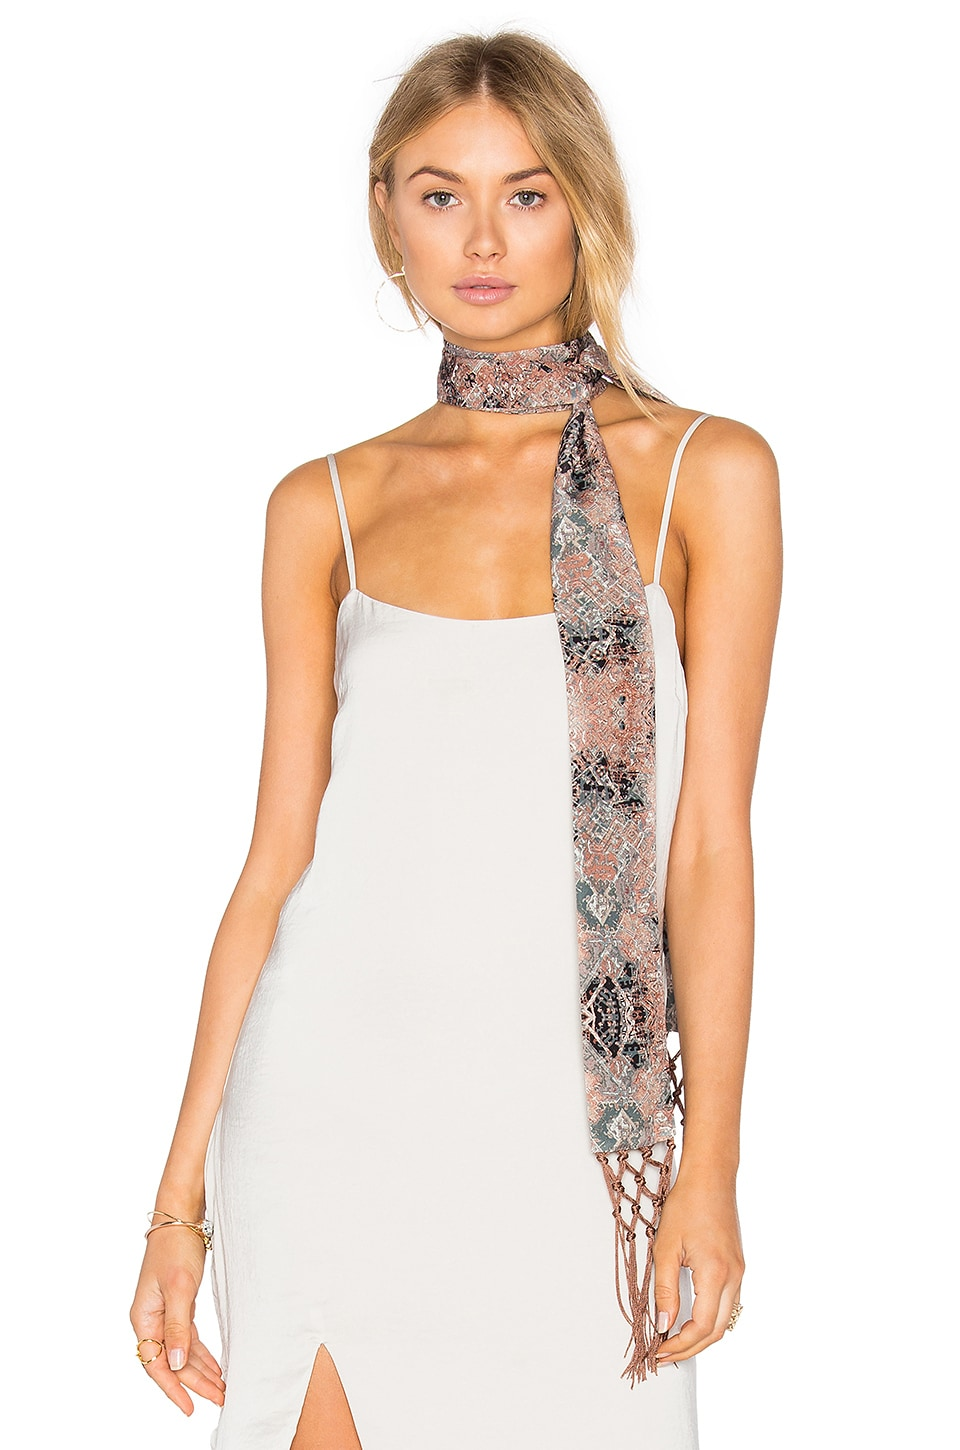 House of Harlow 1960 x REVOLVE Ossie Scarf Mosaic in Kaleidoscope